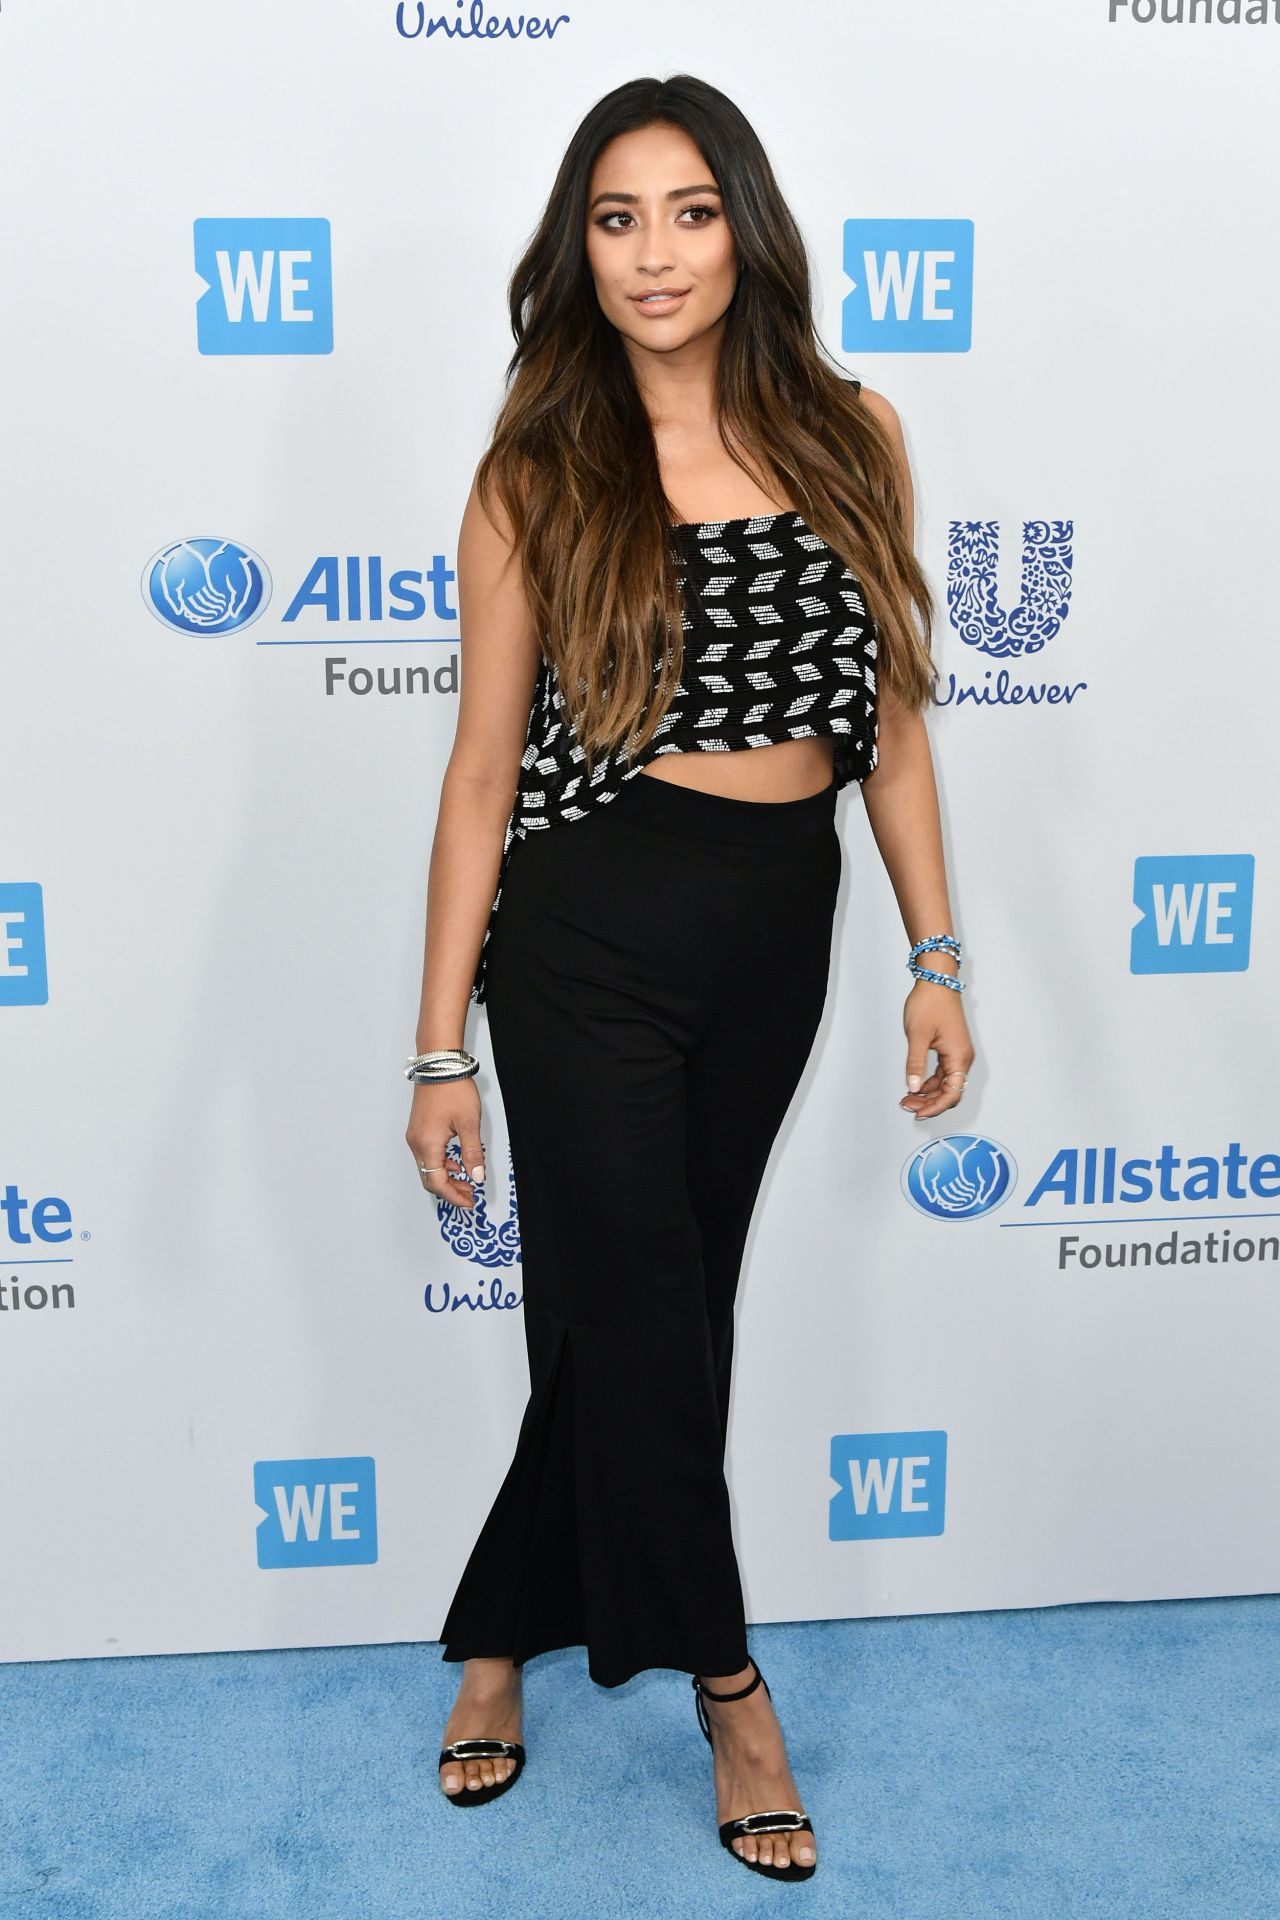 http://celebmafia.com/wp-content/uploads/2017/04/shay-mitchell-at-we-day-california-in-los-angeles-04-27-2017-2.jpg